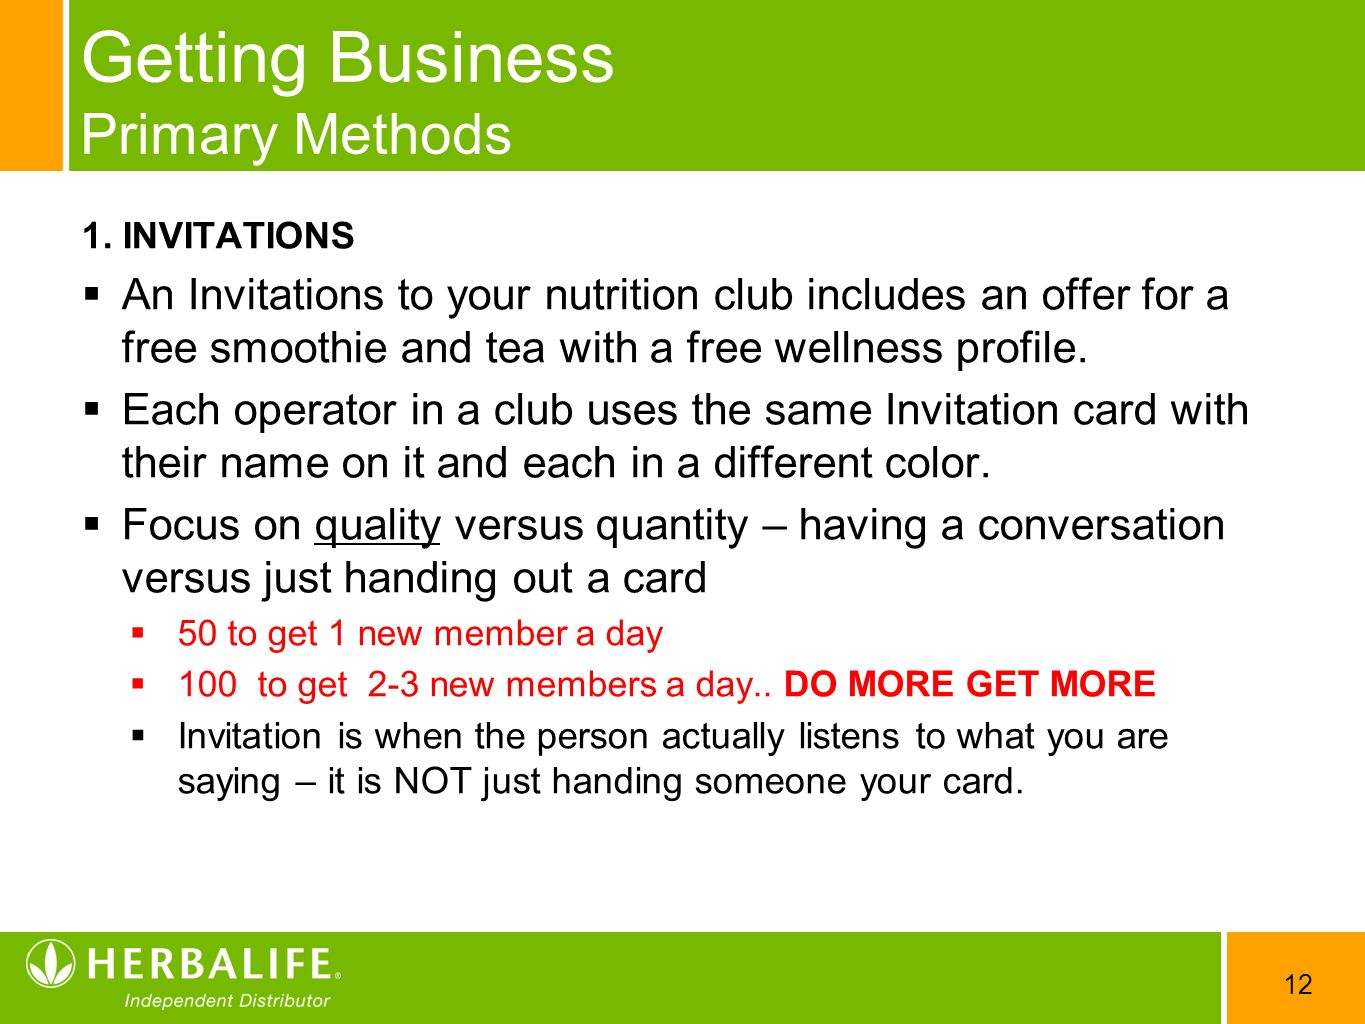 Herbalife Invitation Cards - All The Best Invitation In 2018